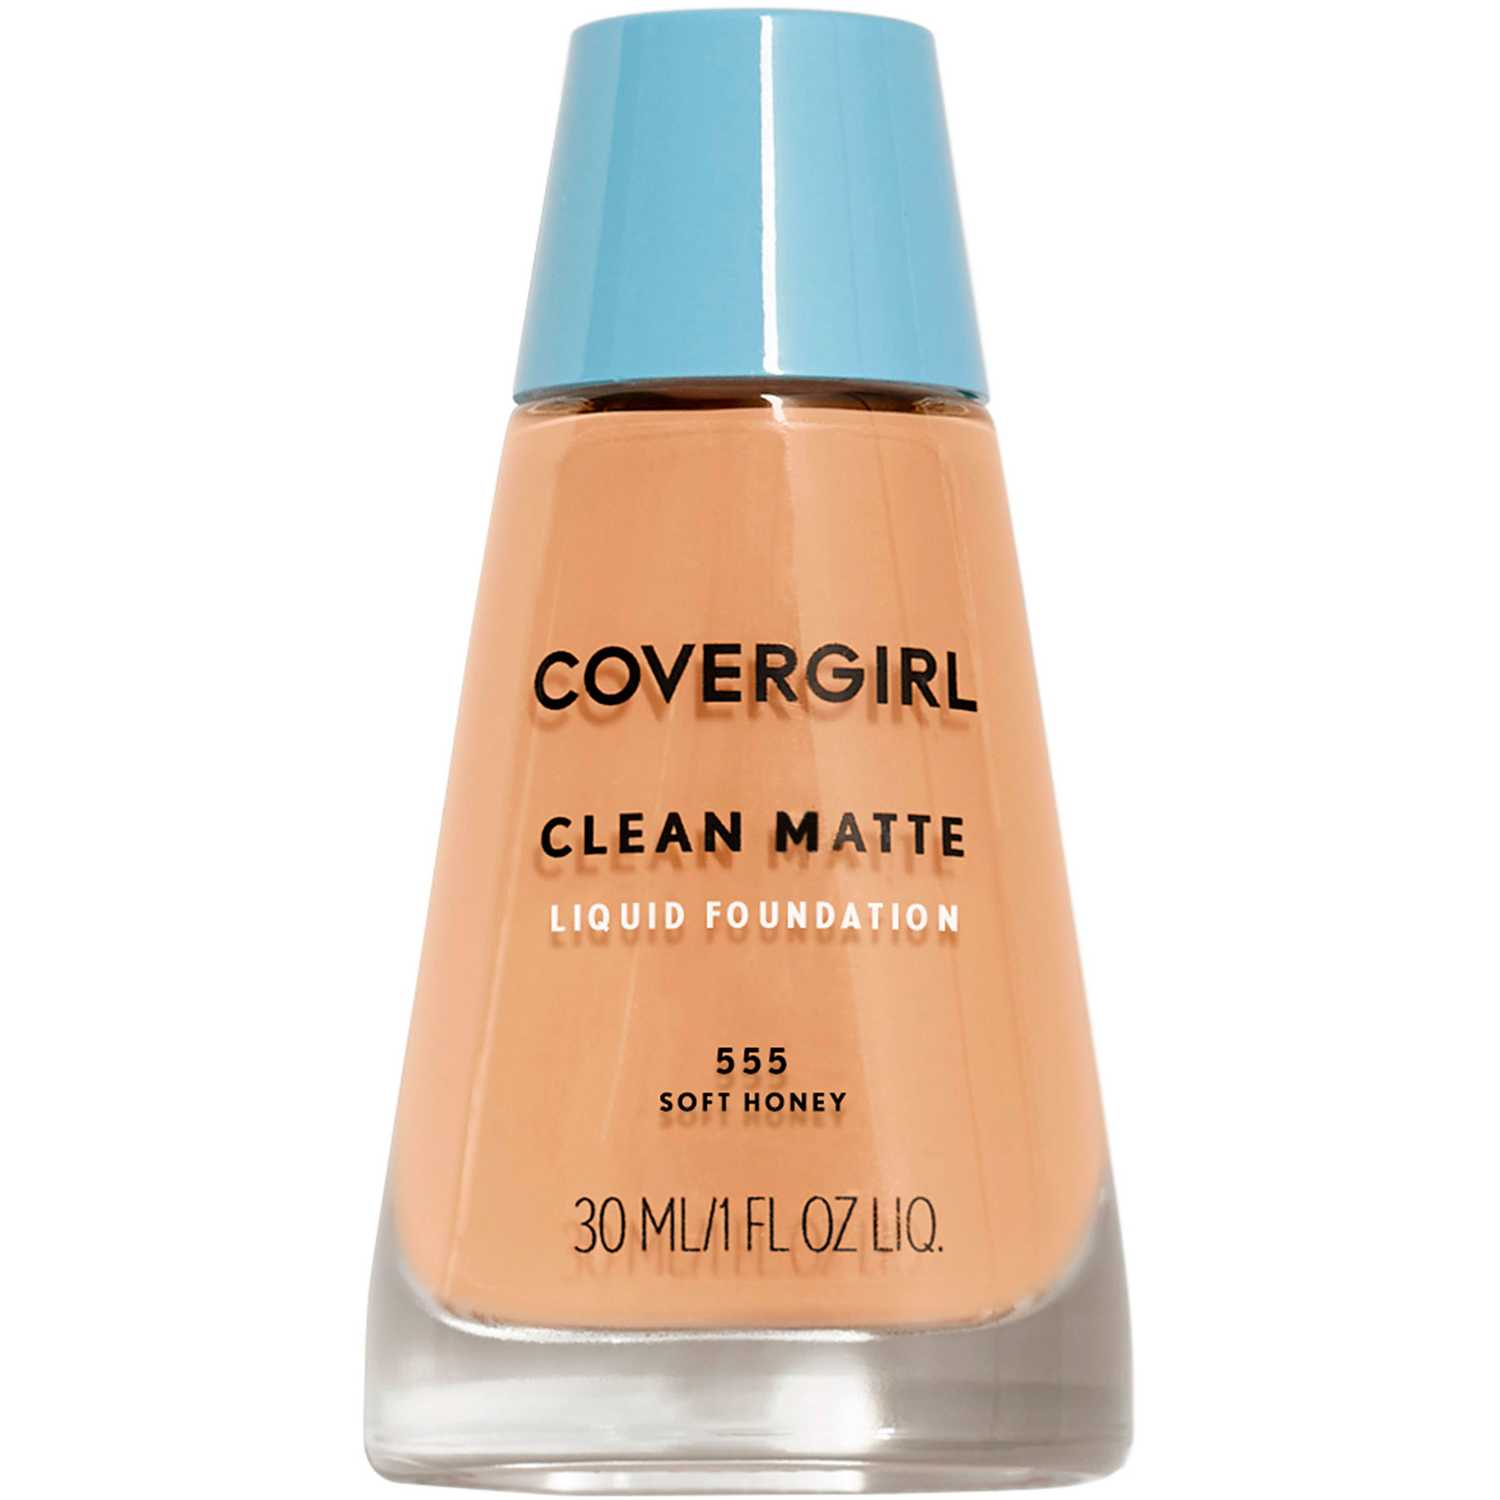 Covergirl base clean matte liquid foundation Soft Honey 555